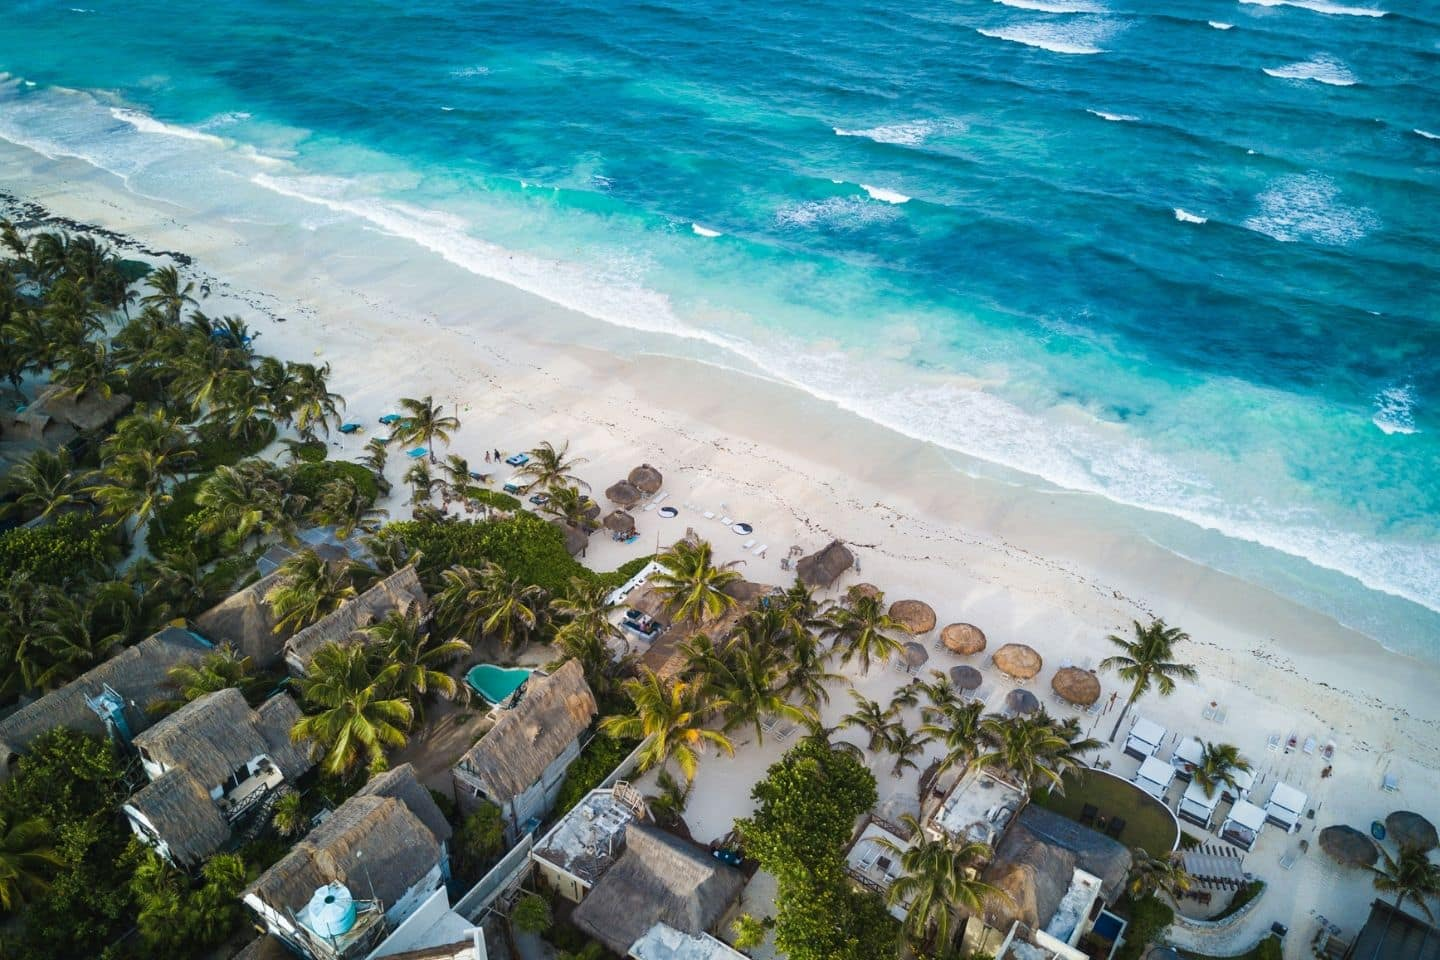 aerial view of tulum, mexico